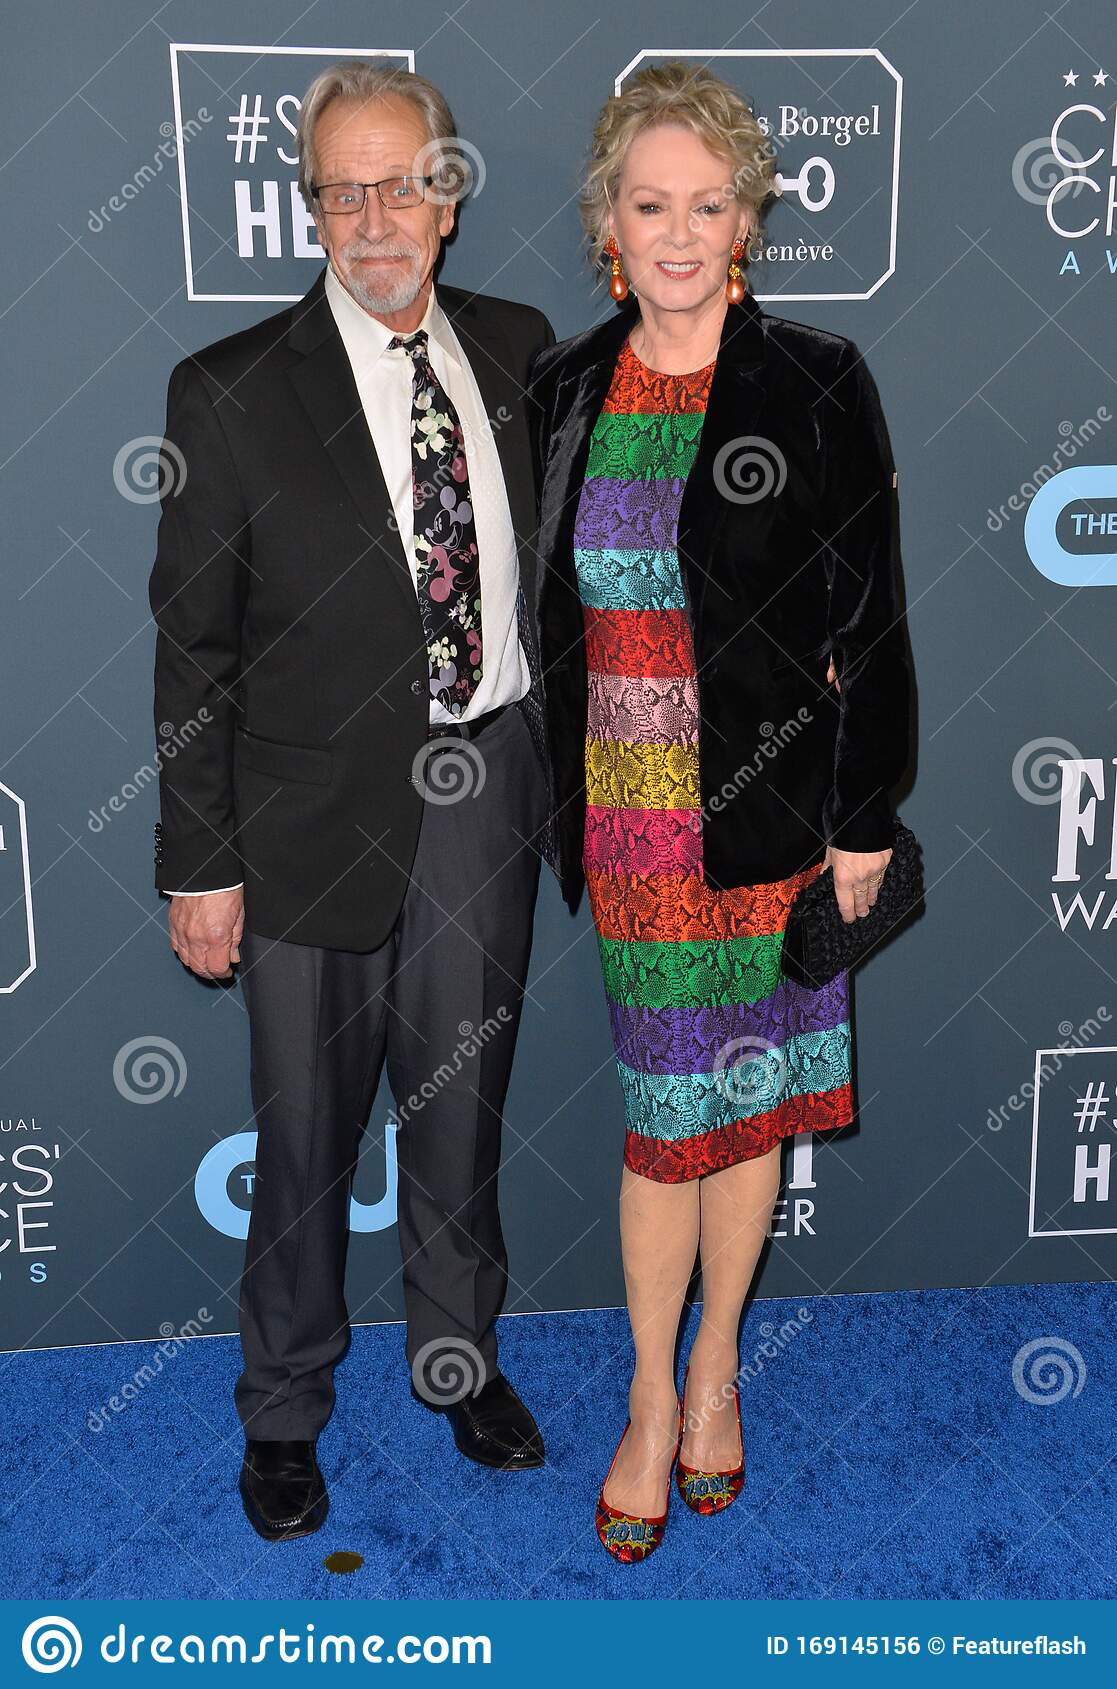 Jean Smart Richard Gilliland Editorial Photo Image Of Celebrity Famous 169145156 Gilliland was born in fort worth, texas. https www dreamstime com jean smart richard gilliland santa monica usa january jean smart richard gilliland th annual critics choice awards image169145156